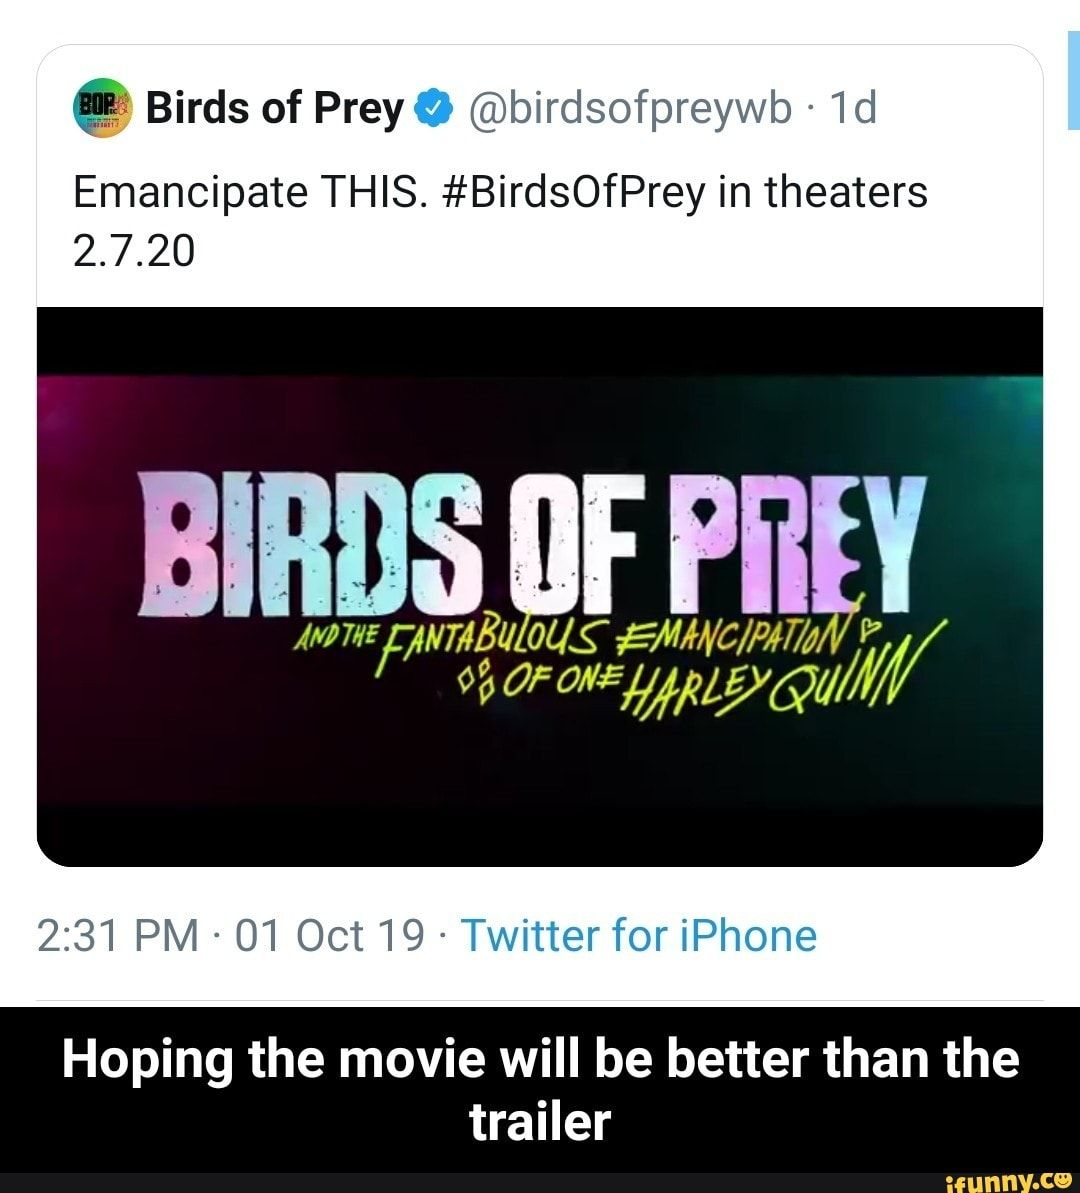 Birds Of Prey Birdsofpreywb 1d Emancipate This Birdsofprey In Theaters 2 7 20 2 31 Pm 01 Oct 19 Twitter For Iphone Hoping The Movie Will Be Better Th Funny Video Memes Birds Of Prey Memes